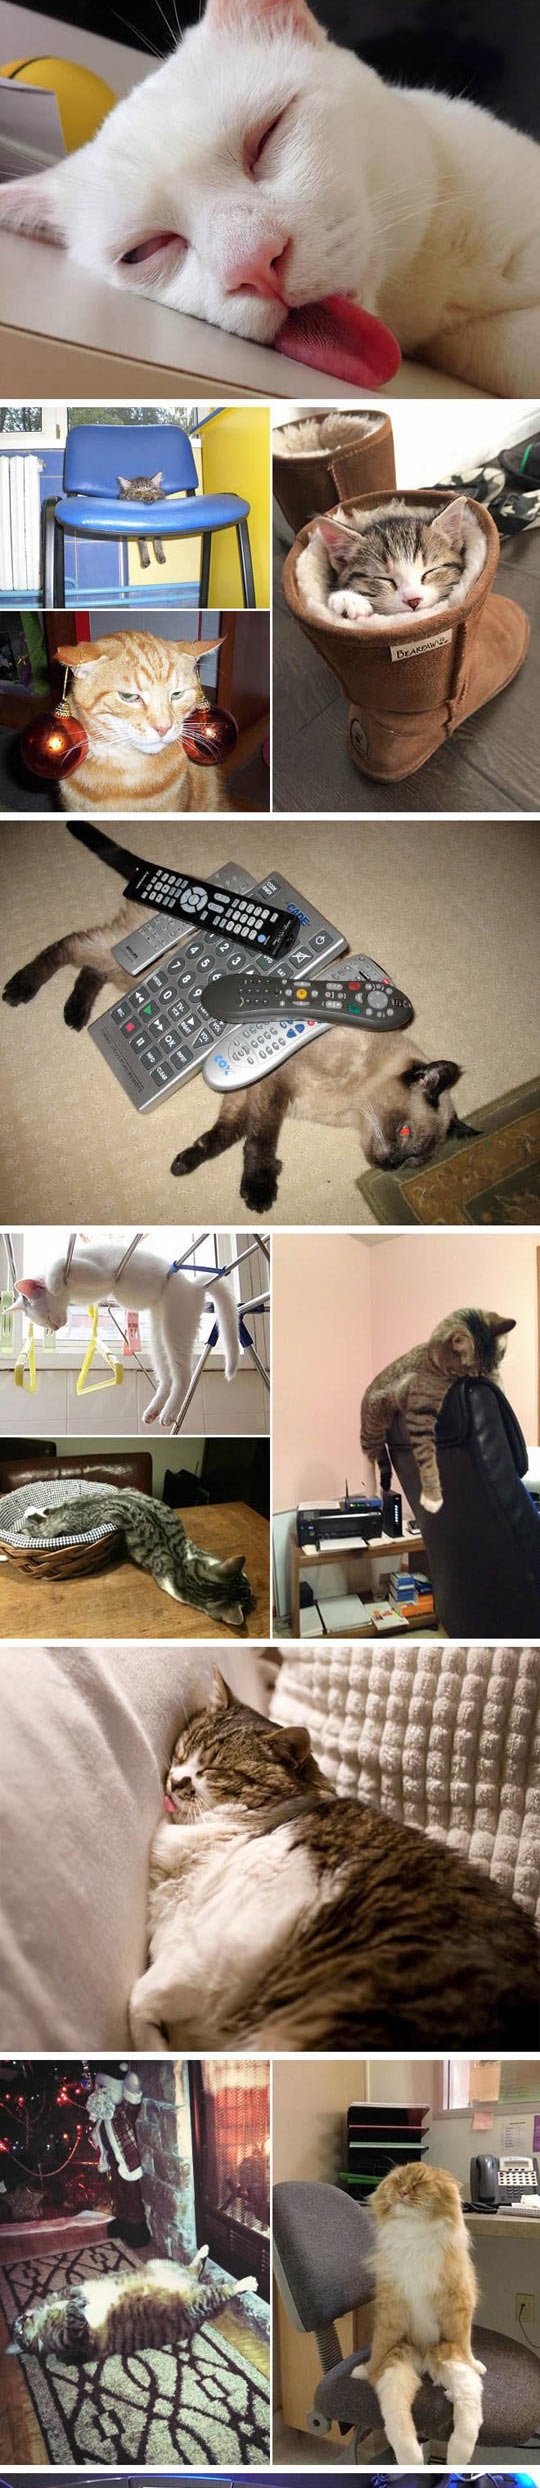 funny-cats-sleeping-everywhere-control-remote